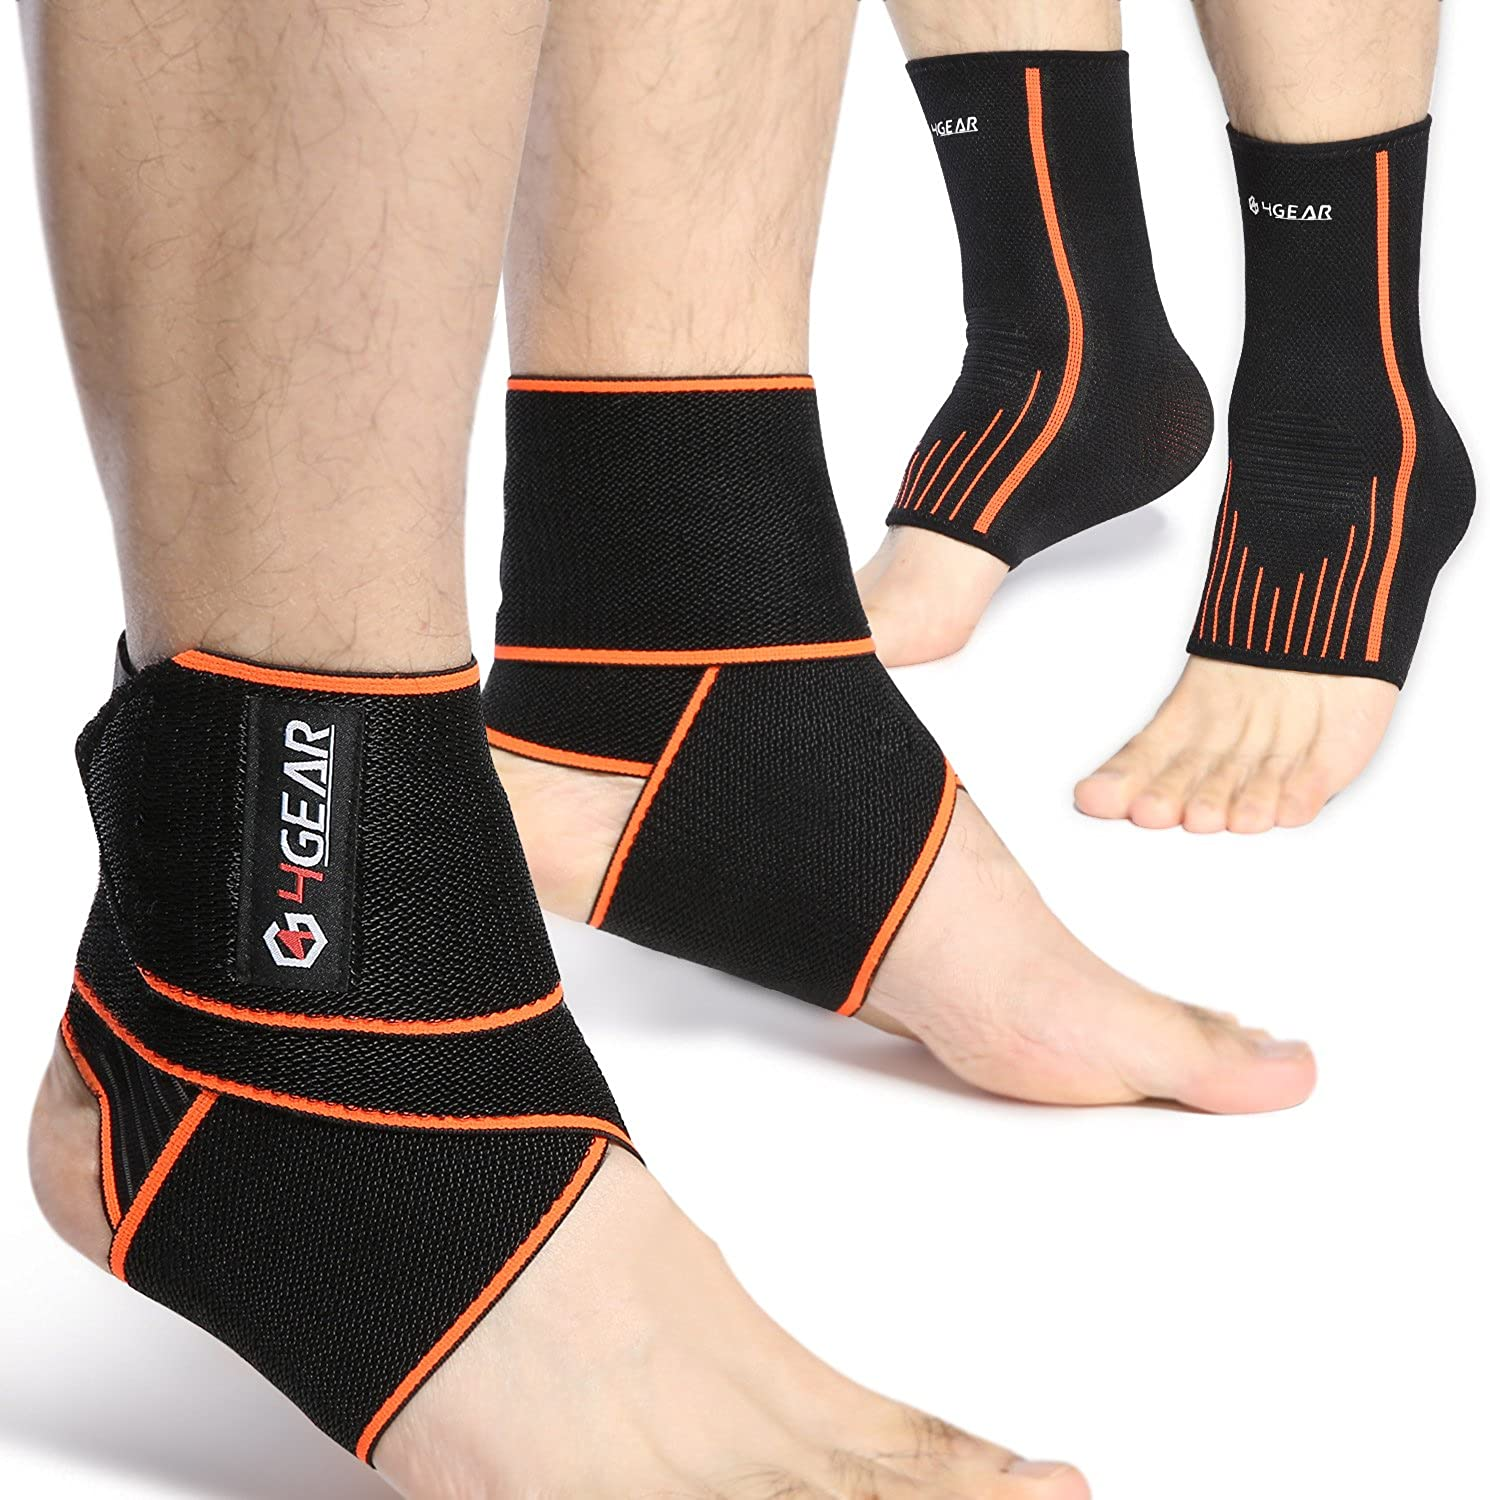 Ankle Brace Kit  Ankle Brace Straps (1 Pair) & Ankle Compression Sleeves Arch Supports (1 Pair)  Best Sports Predection, Injury Recovery, Reduce Swelling, Ankle Strain & Sprains Fatigue